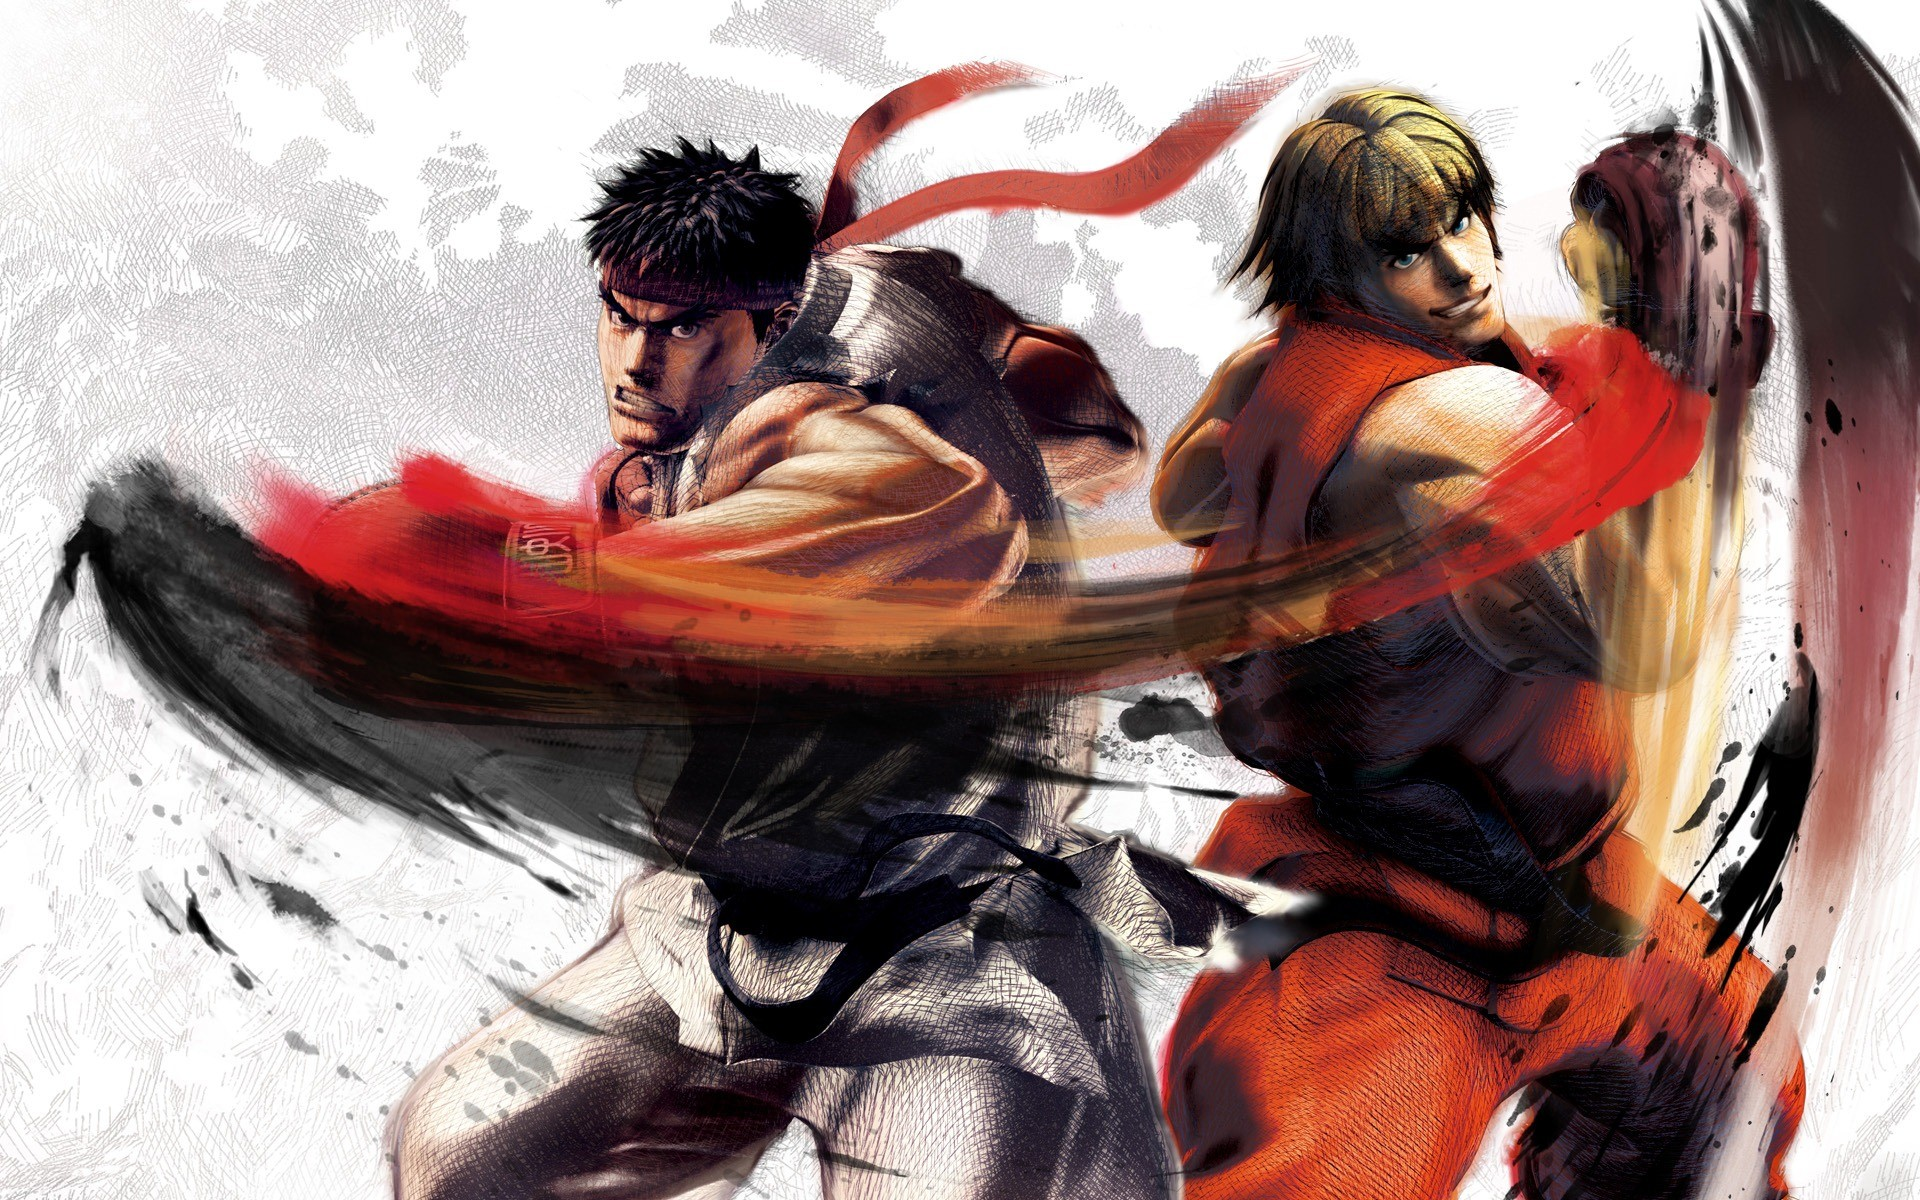 Free Modern Street Fighter HD The Wallpapers | HD .